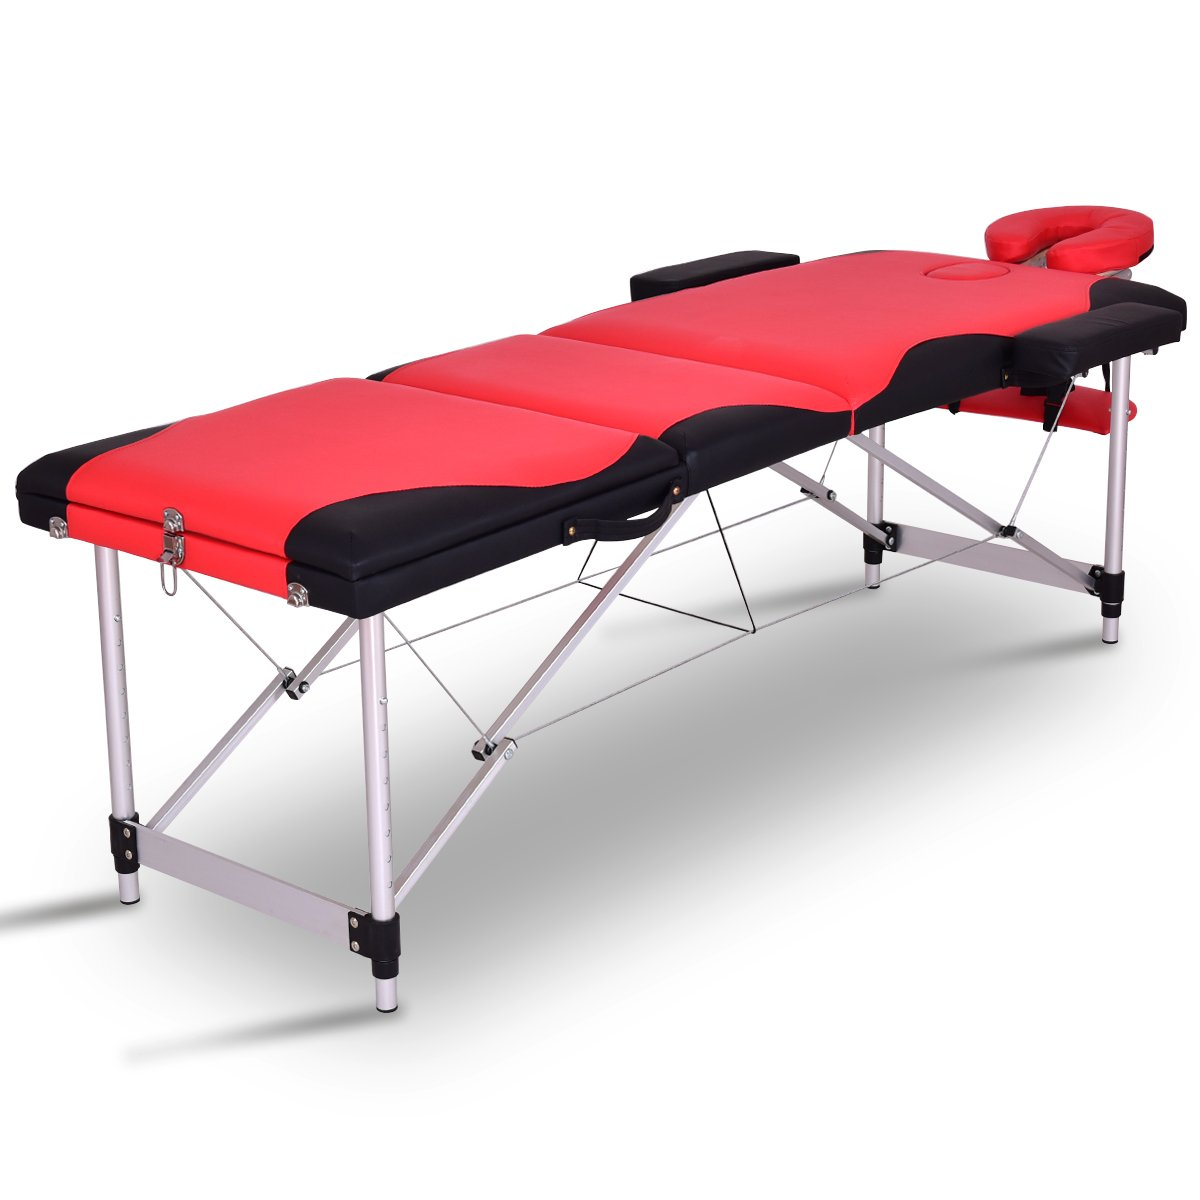 Giantex Spa Beds Massage Tables 84 L 3 Section Portable Salon Massaging Table Wood Aluminum Frame Home Beauty Equipment Face Cradle Armrests 7 Adjustable Height Facial Tattoo Bed w Carry Case Red